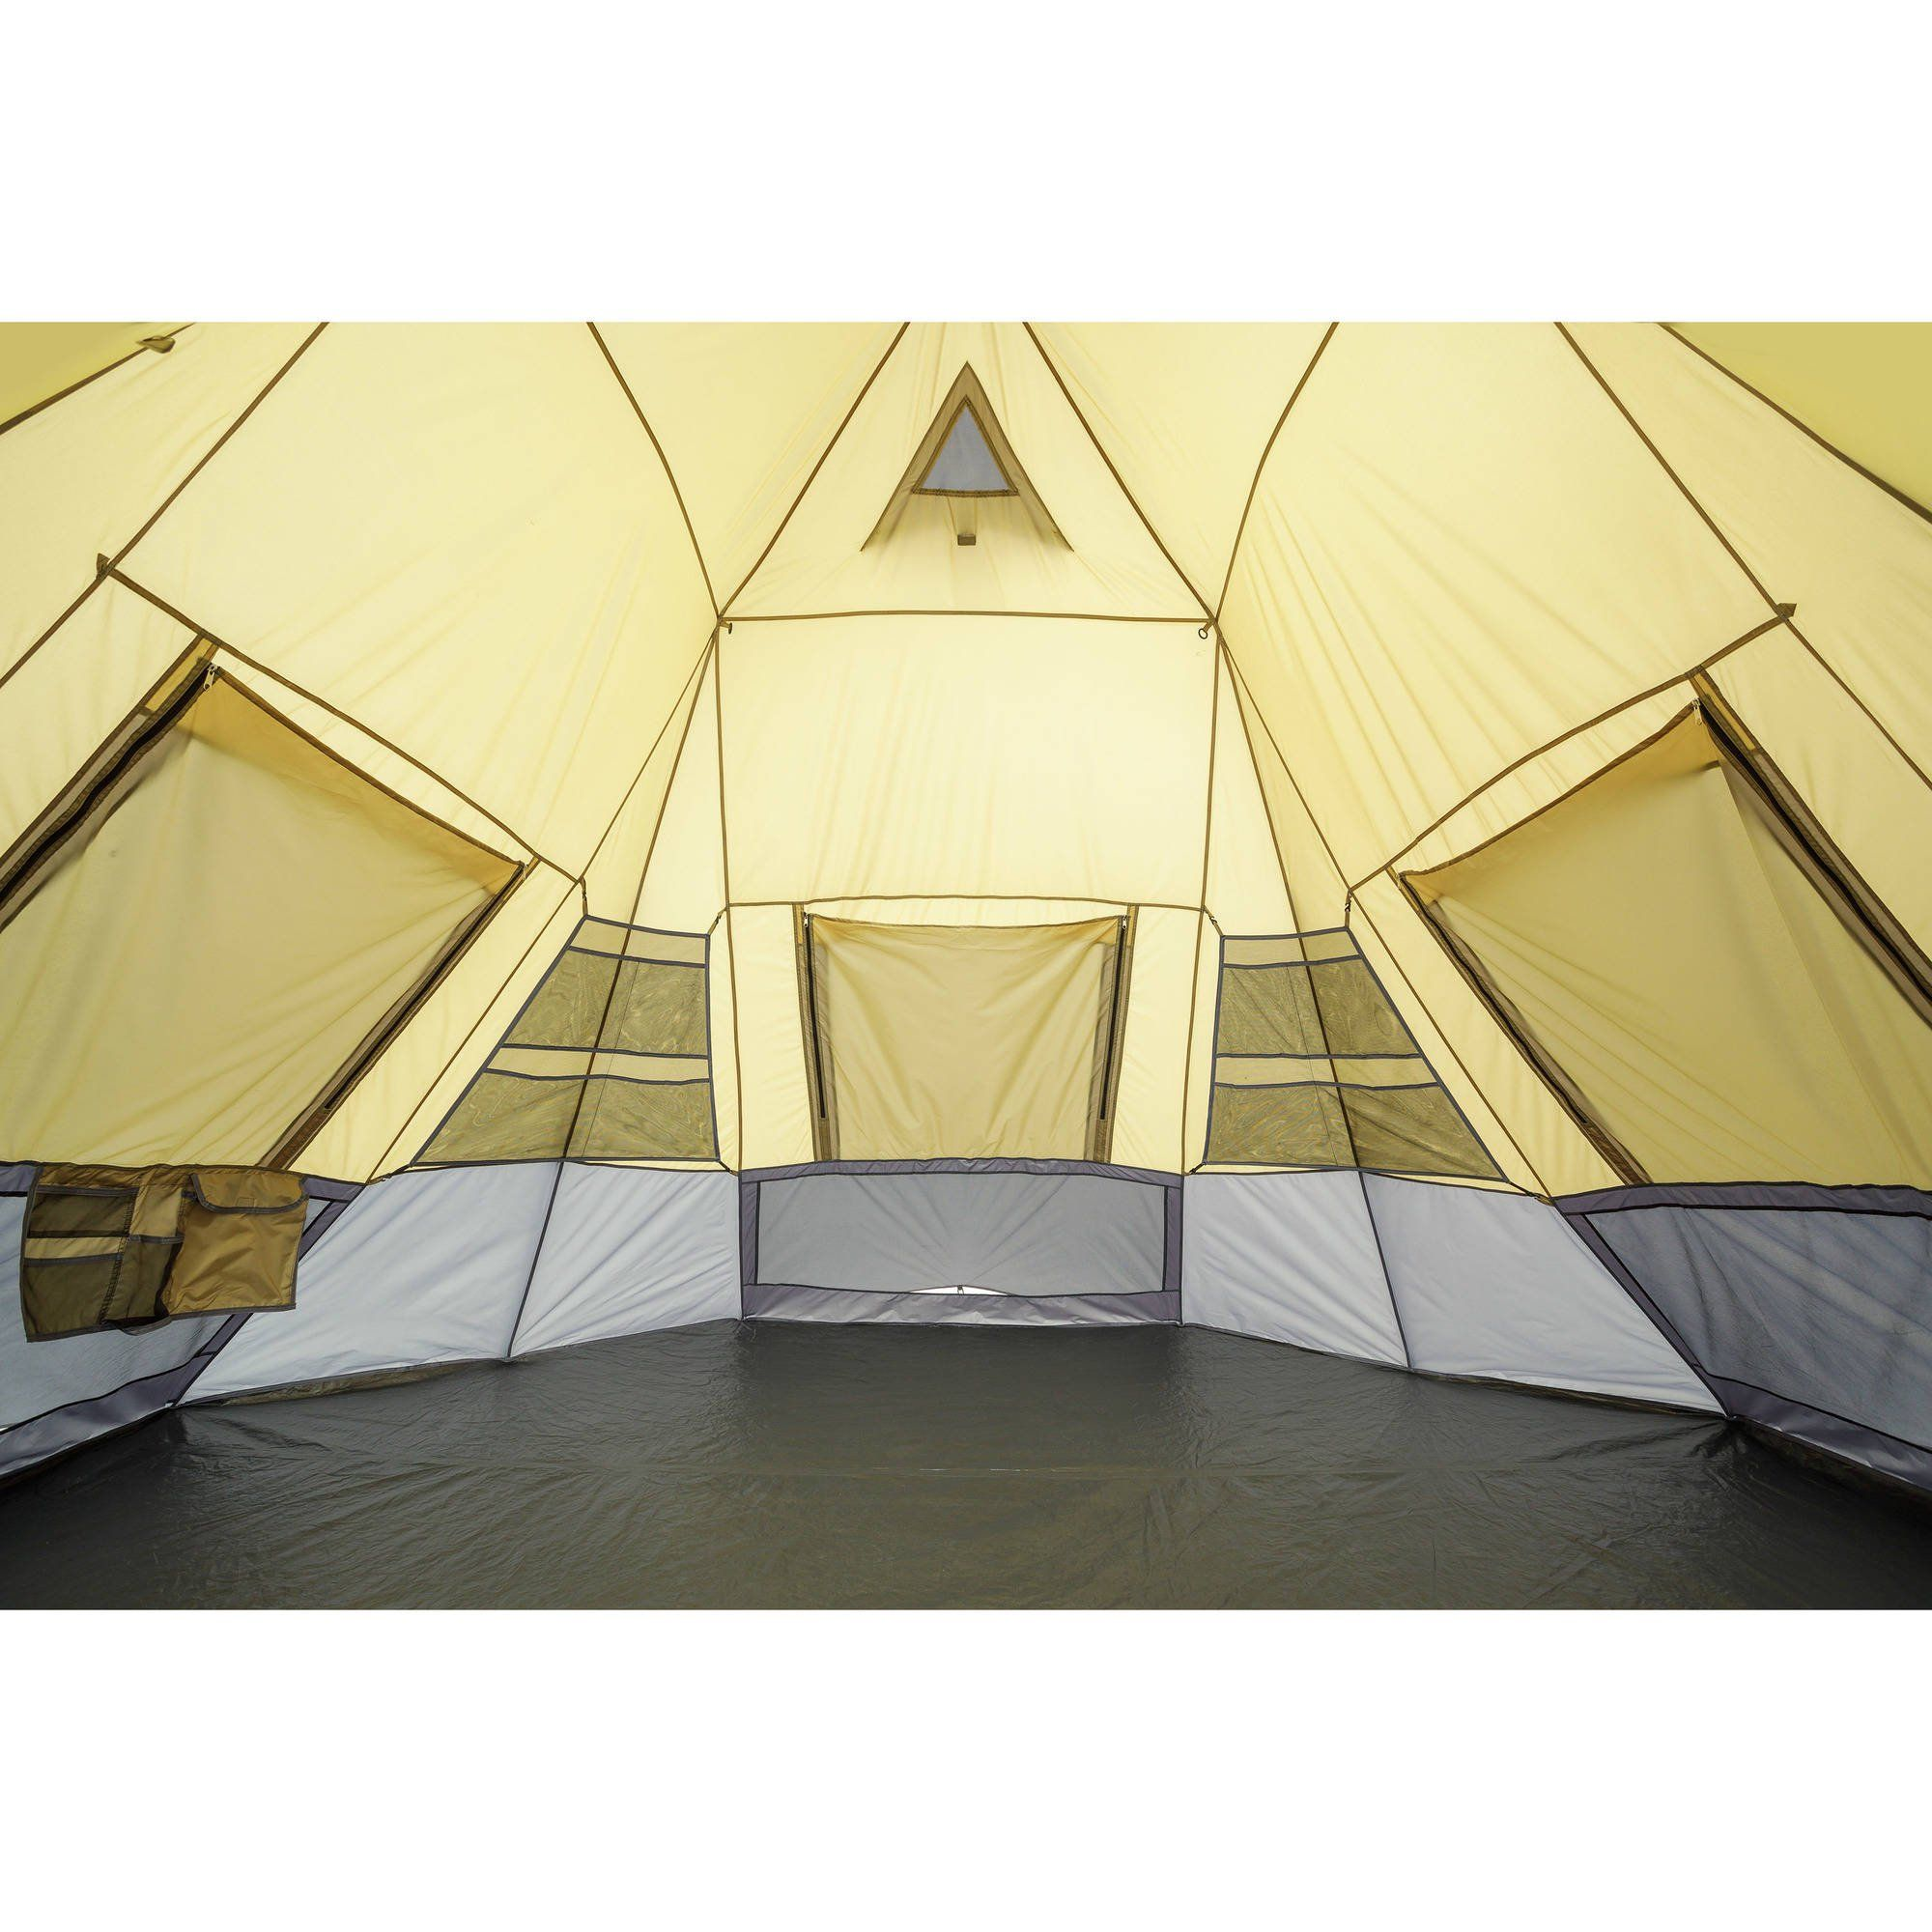 Ozark Trail 12 X 12 7 Person Instant Tepee Tent Walmart Com In 2021 Tent Teepee Tent Family Tent Camping